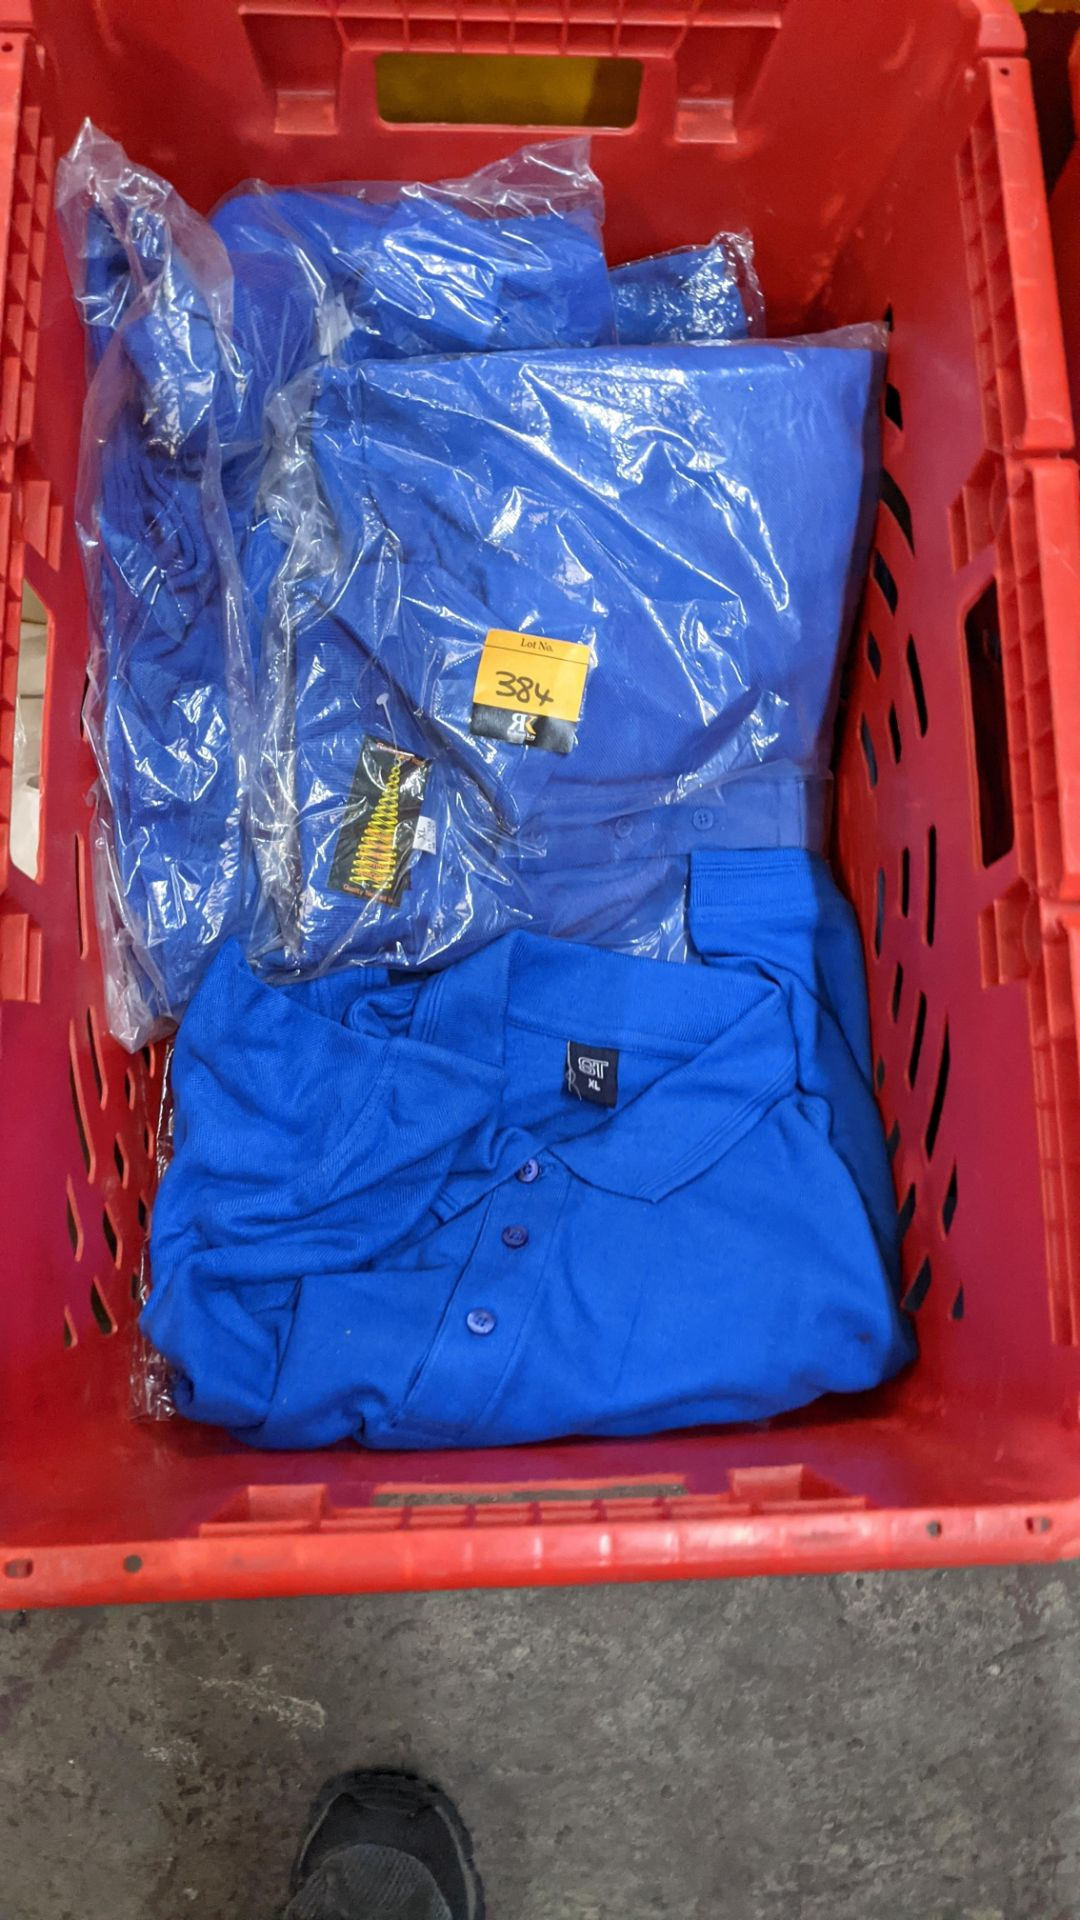 Approx 17 off bright blue polo shirts - Image 3 of 4